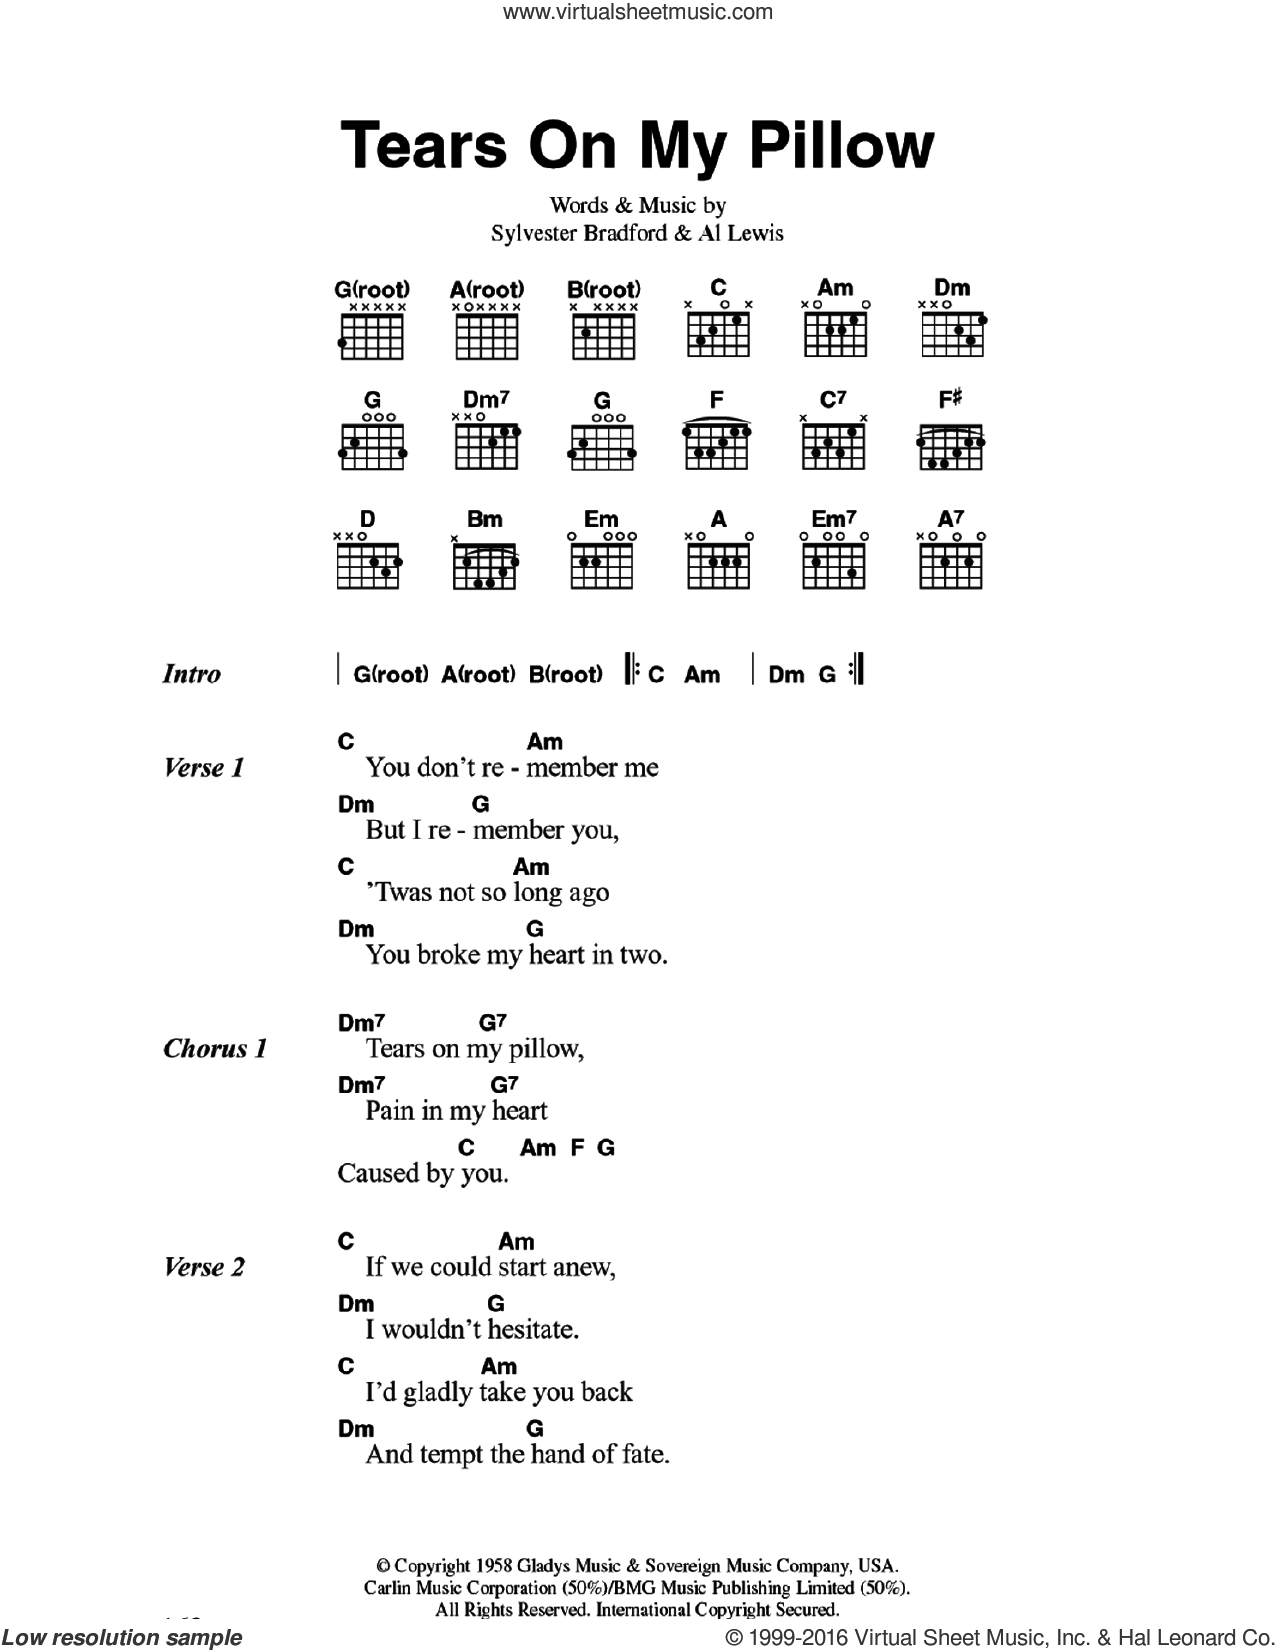 Tears On My Pillow sheet music for guitar (chords) by Little Anthony & The Imperials, Al Lewis and Sylvester Bradford, intermediate skill level